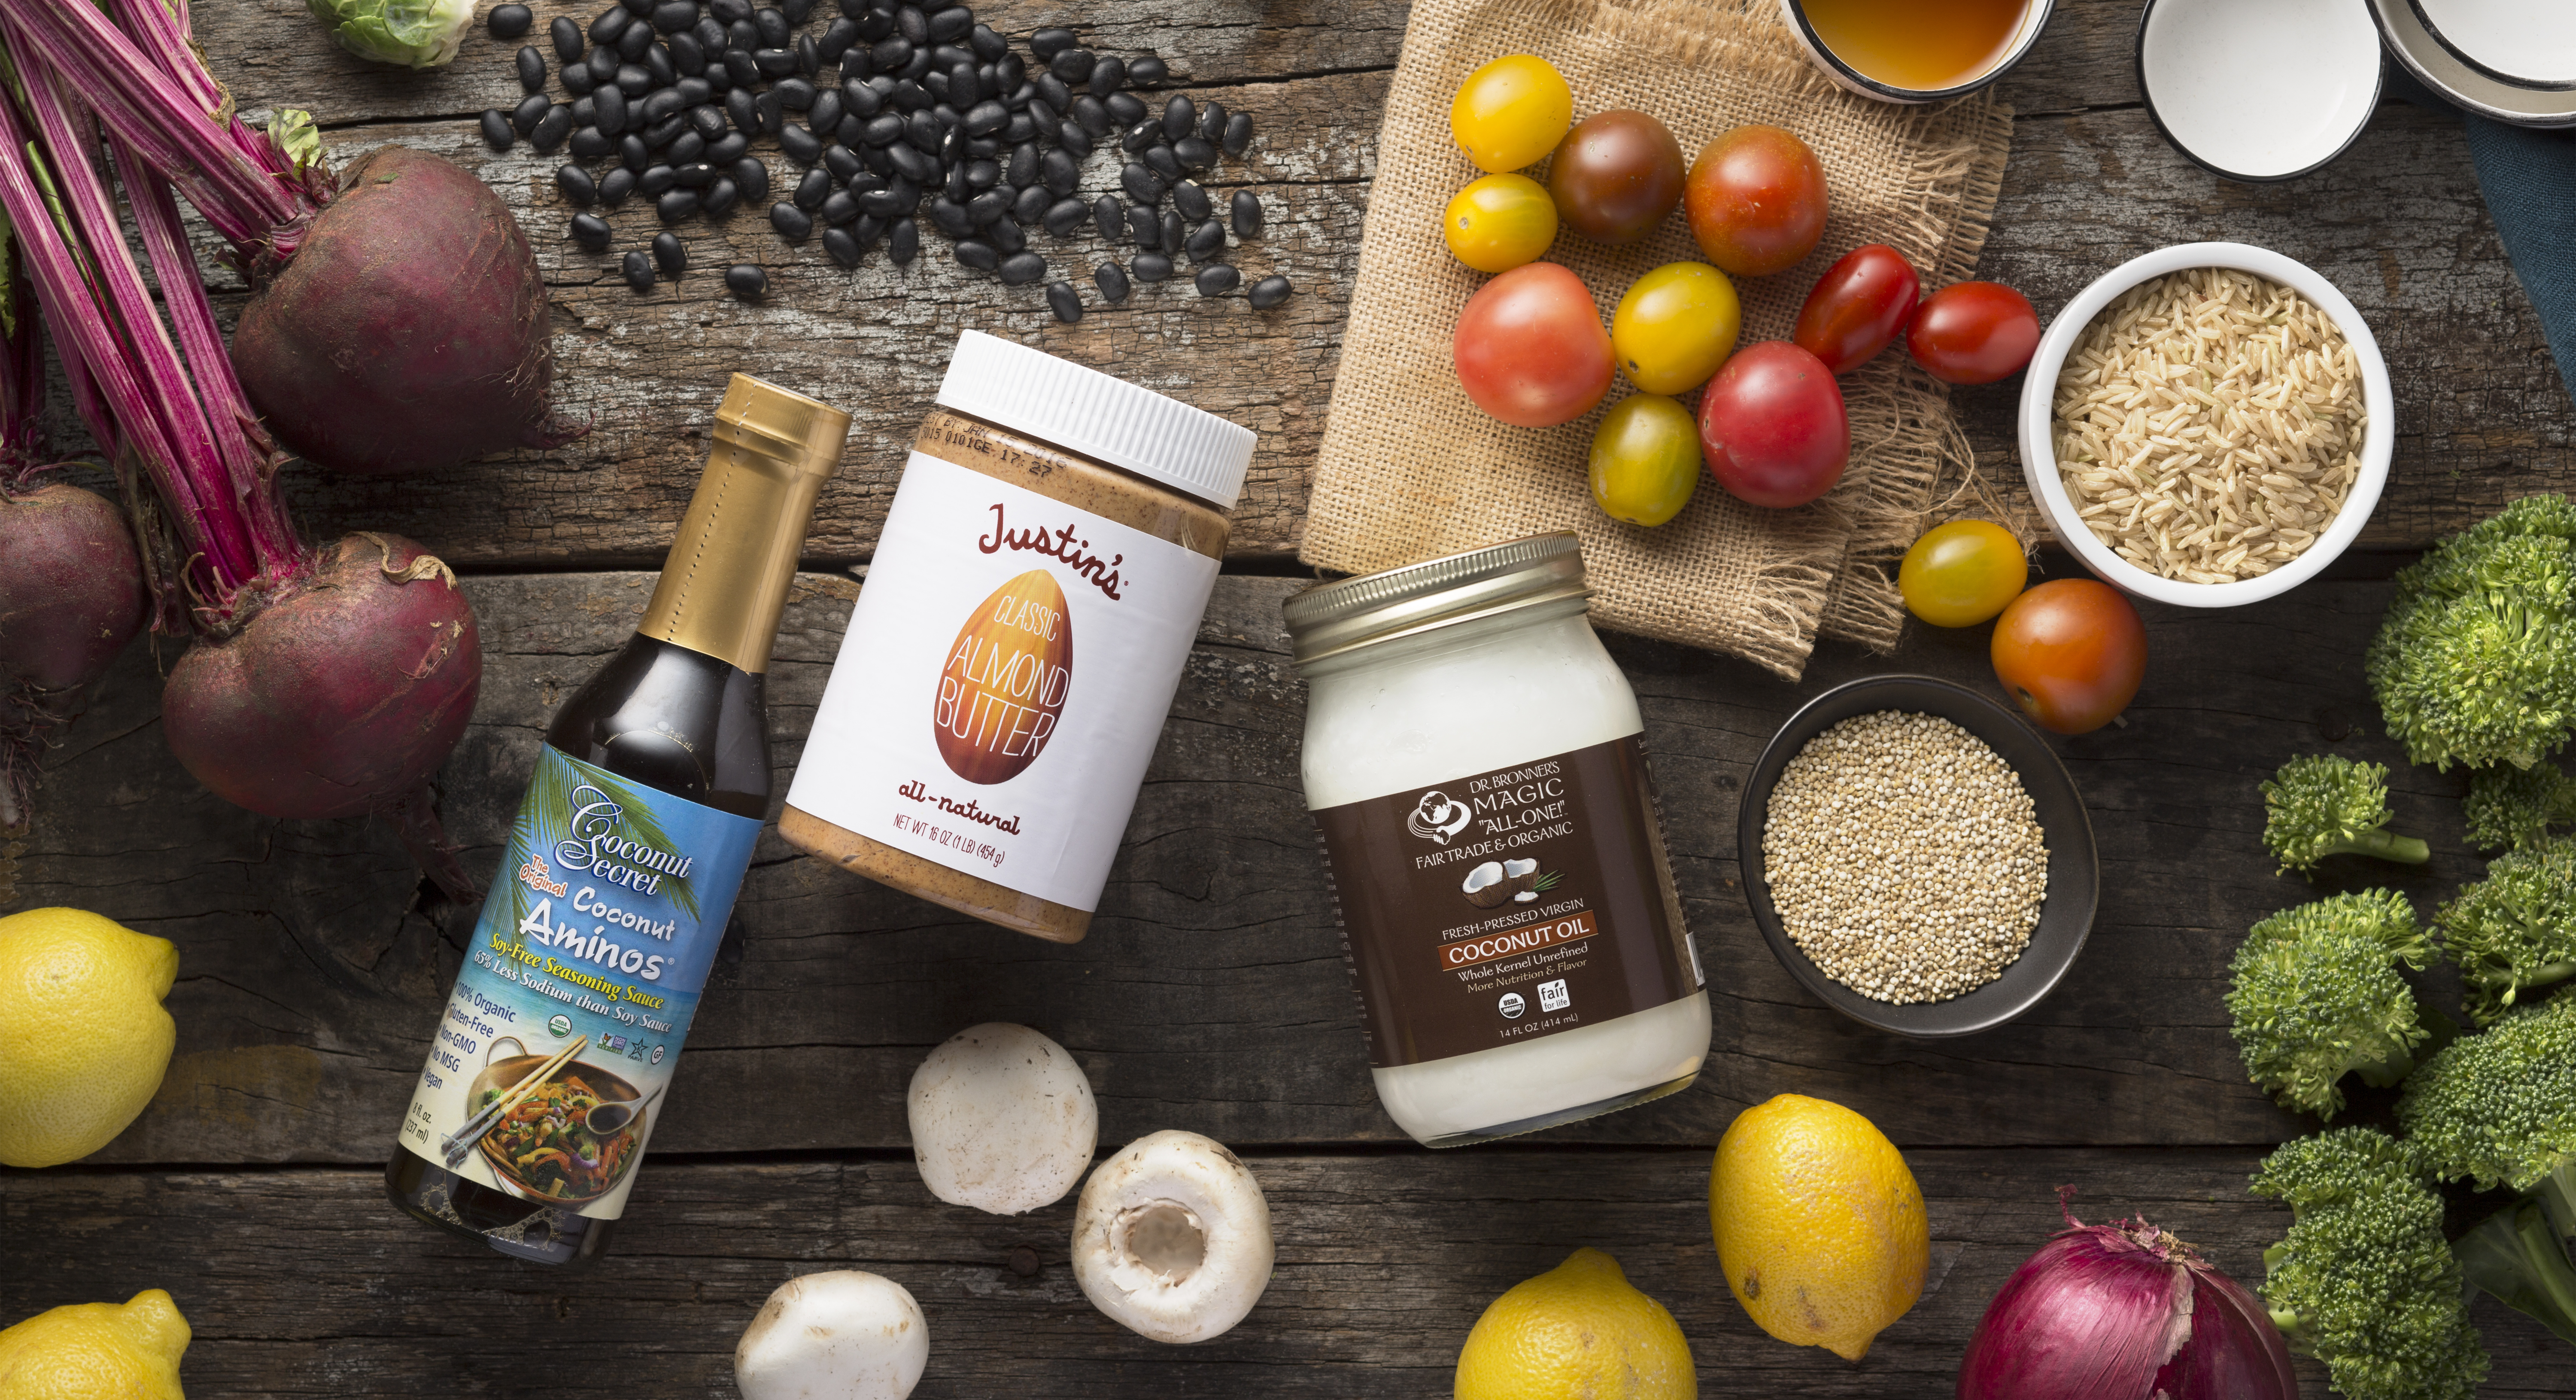 Going Vegan? Here Are 9 Staples For Your Pantry